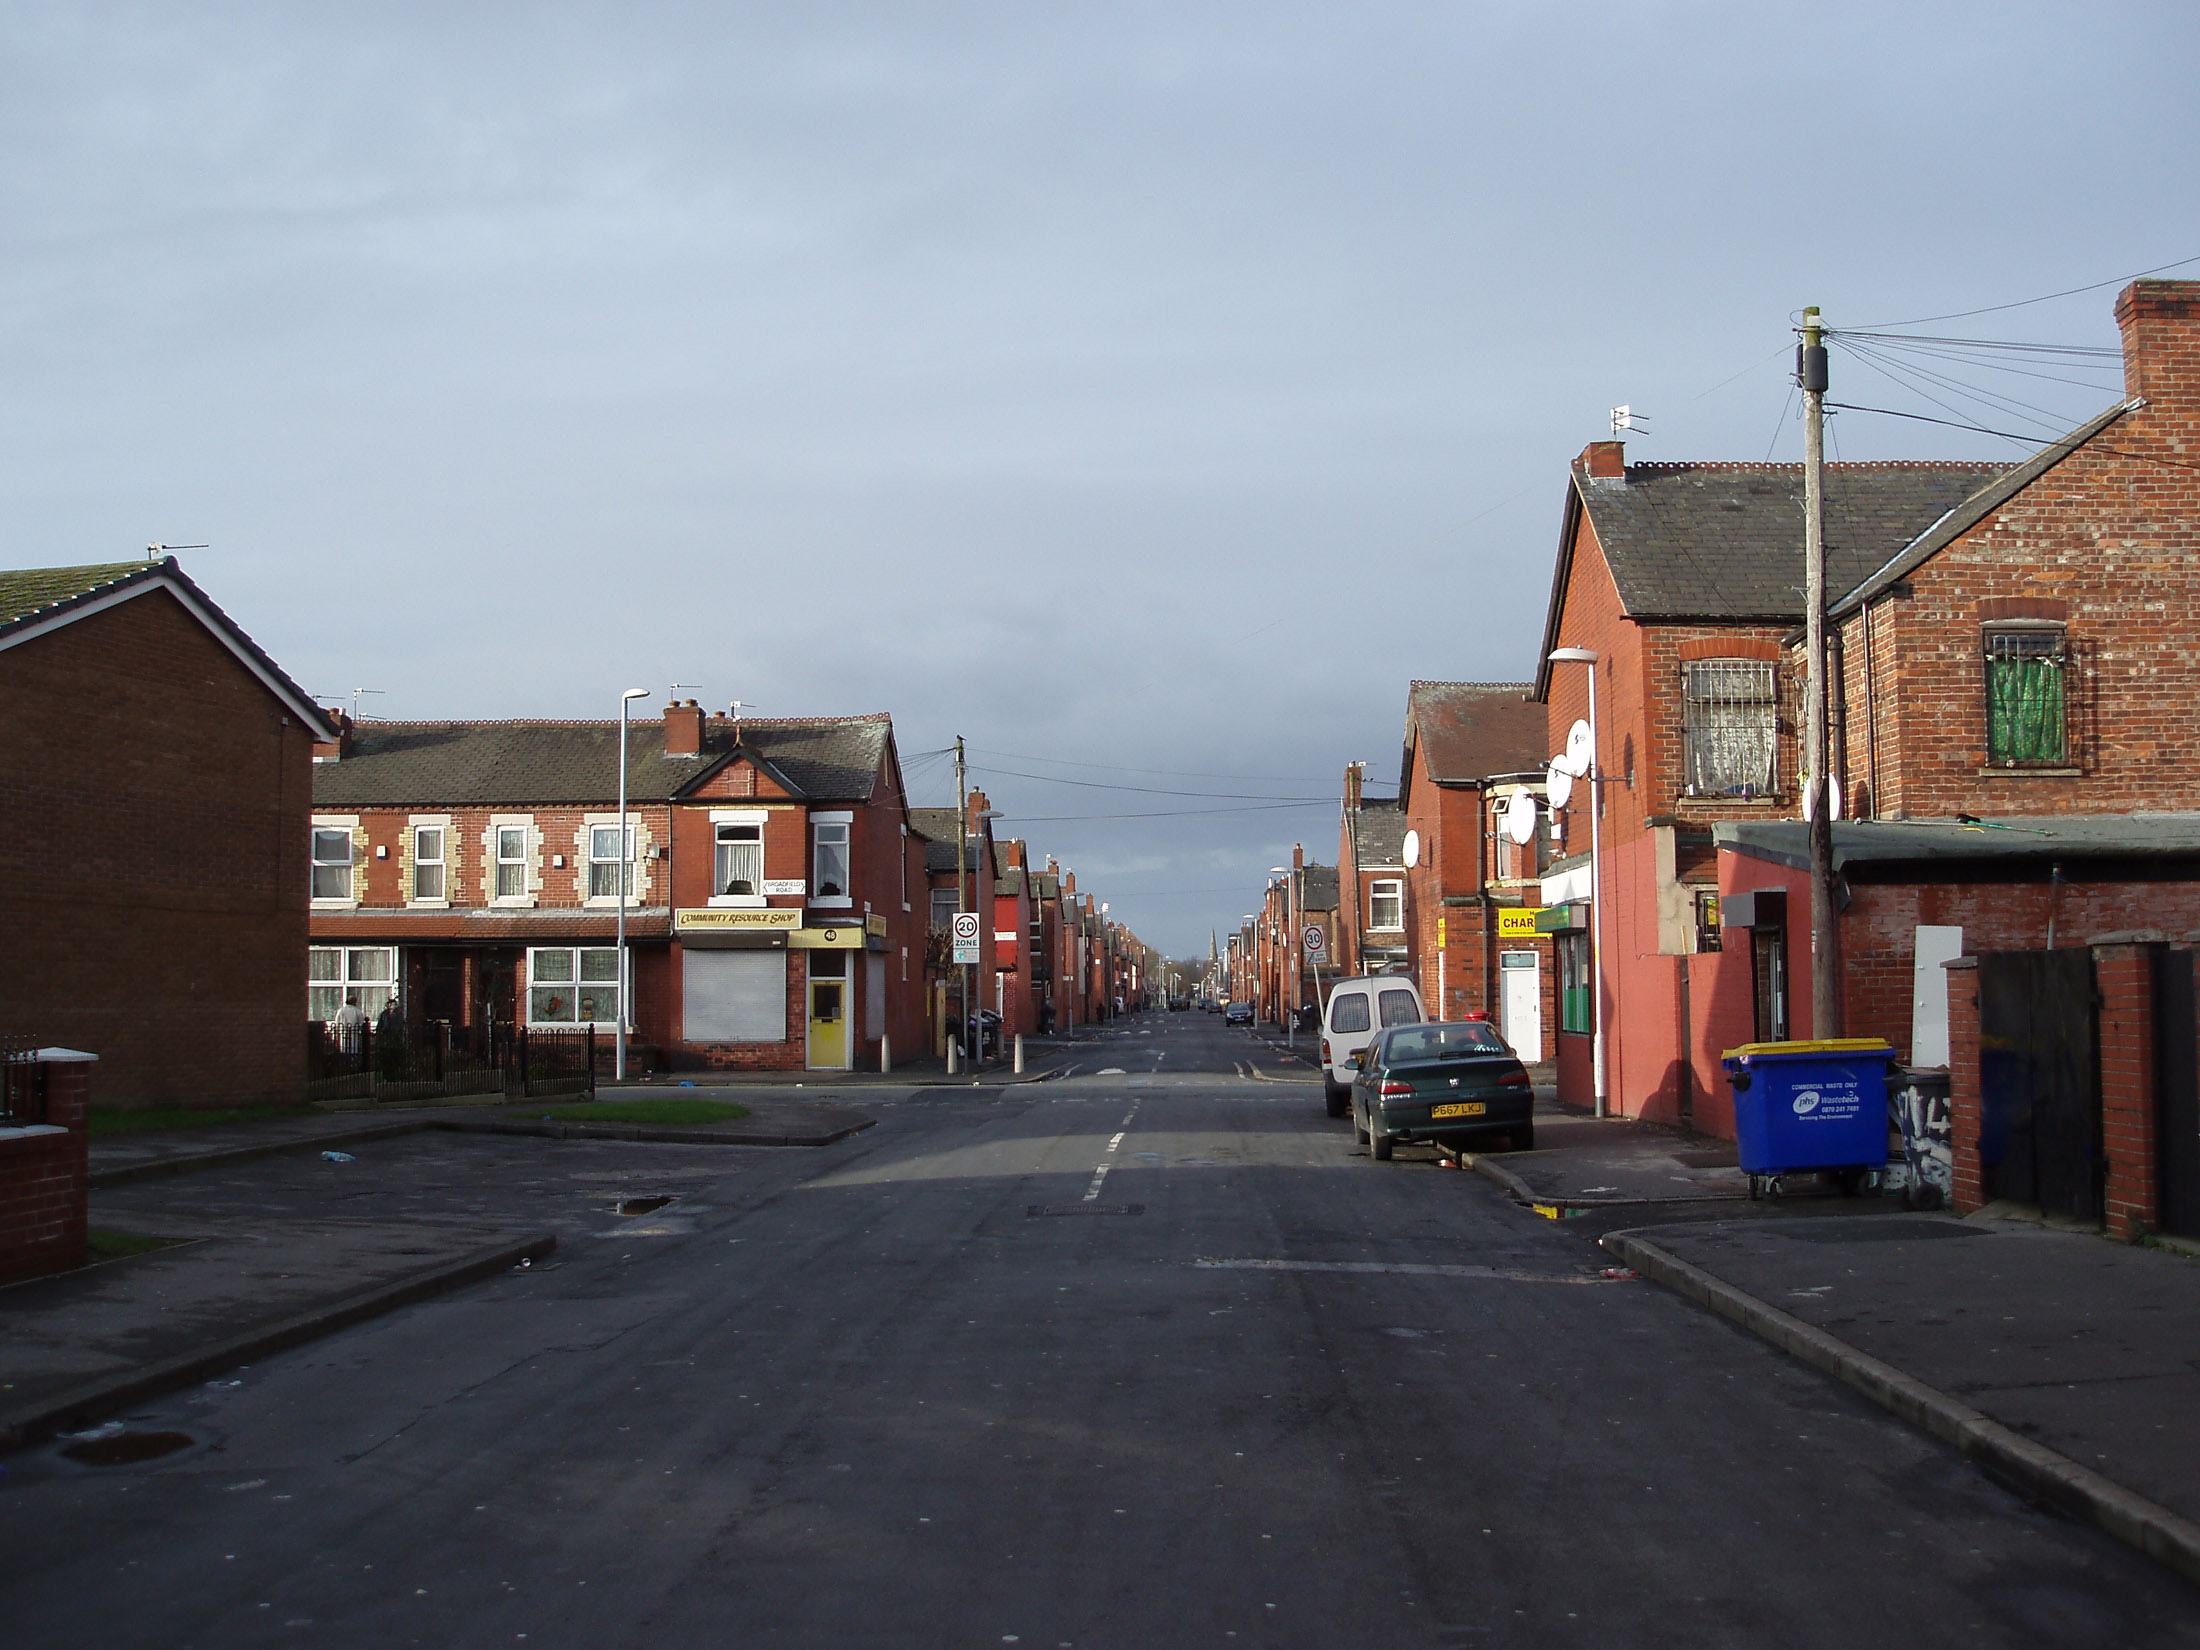 Side street in Moss, Manchester showing the typical red brick architecture, parked cars and a garbage bin